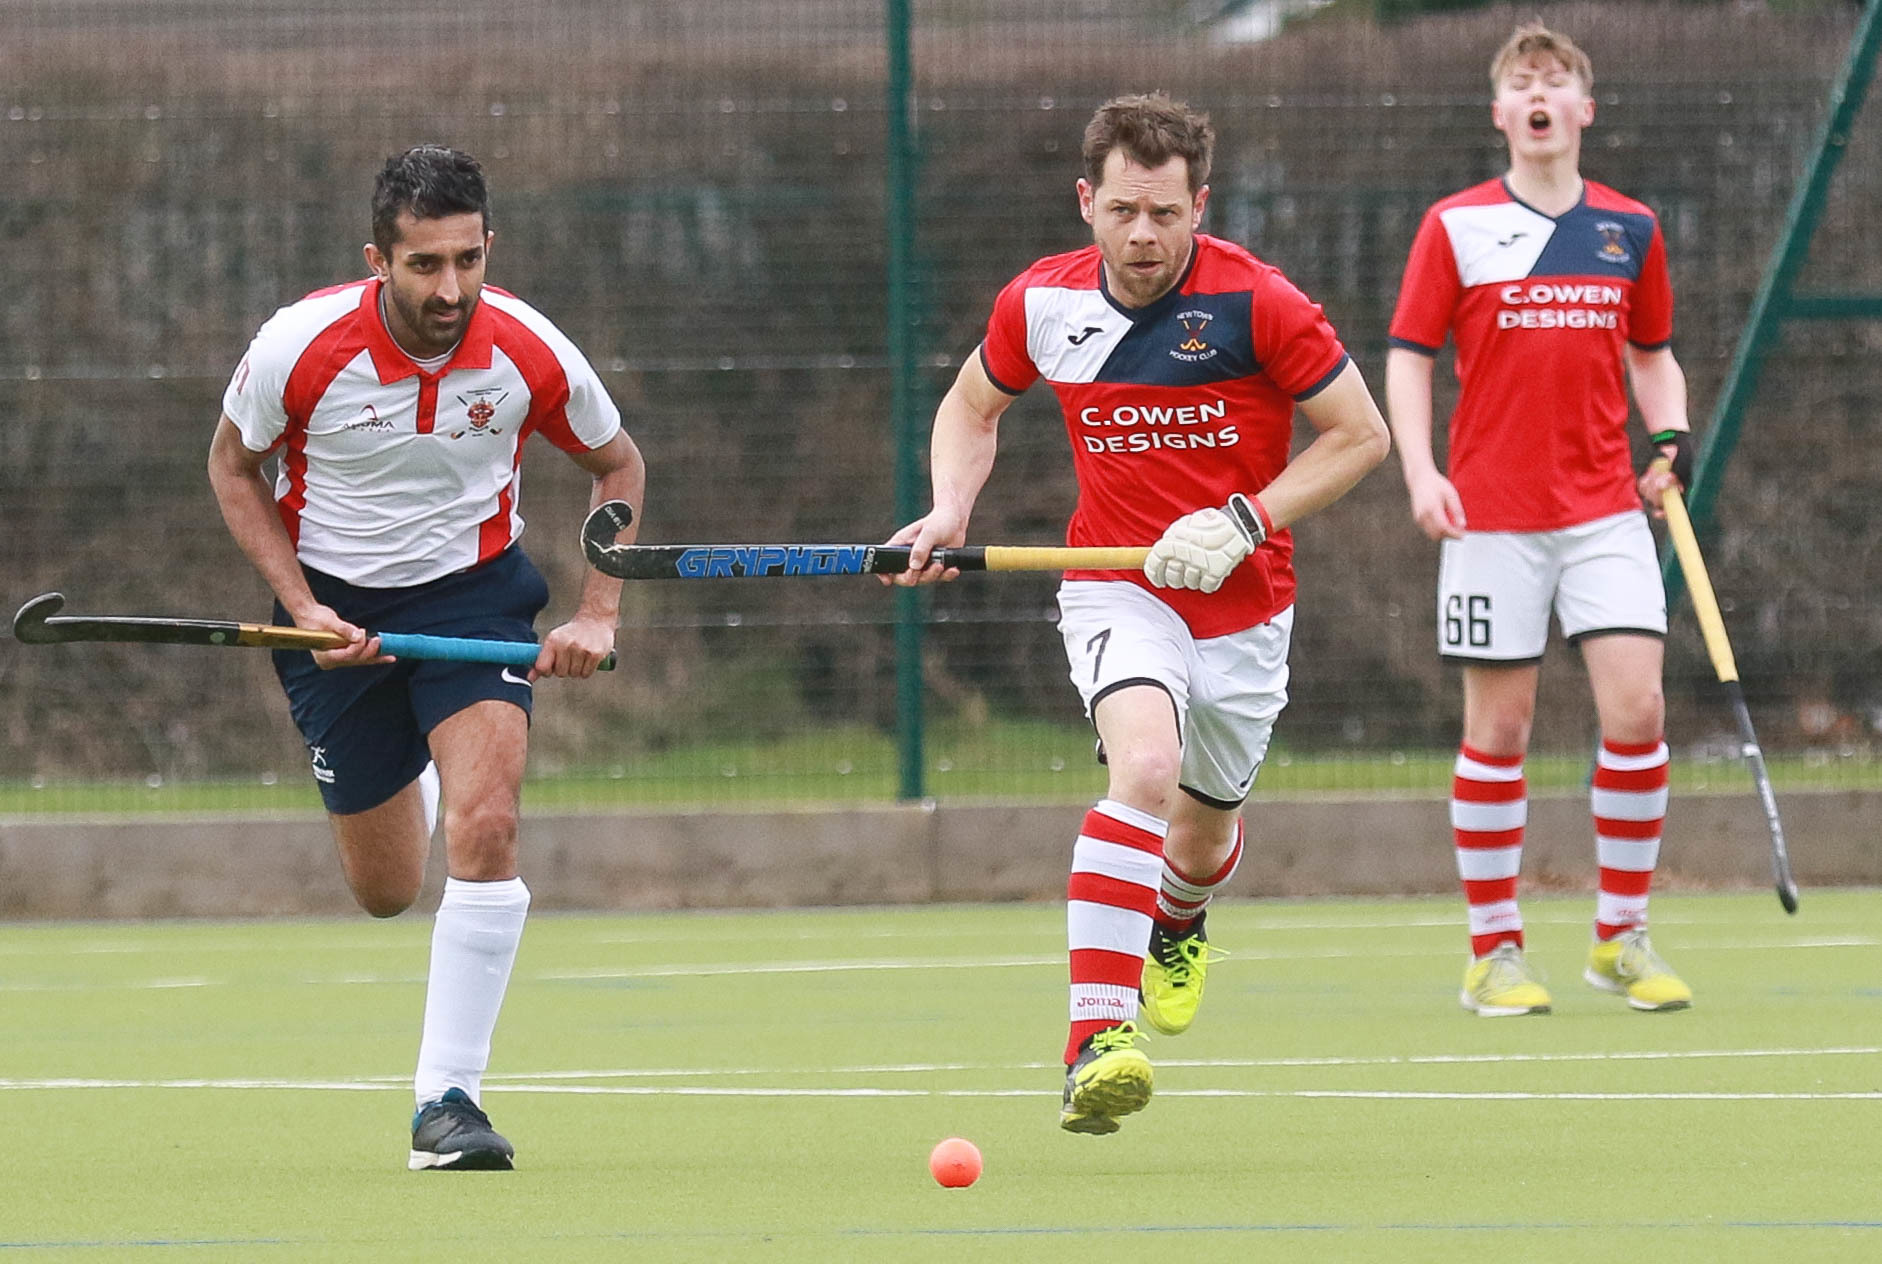 Newtown v Wolverhampton Mens Hockey..Pictured is Andy Denham..Picture by Phil Blagg..PB076-2019-2.